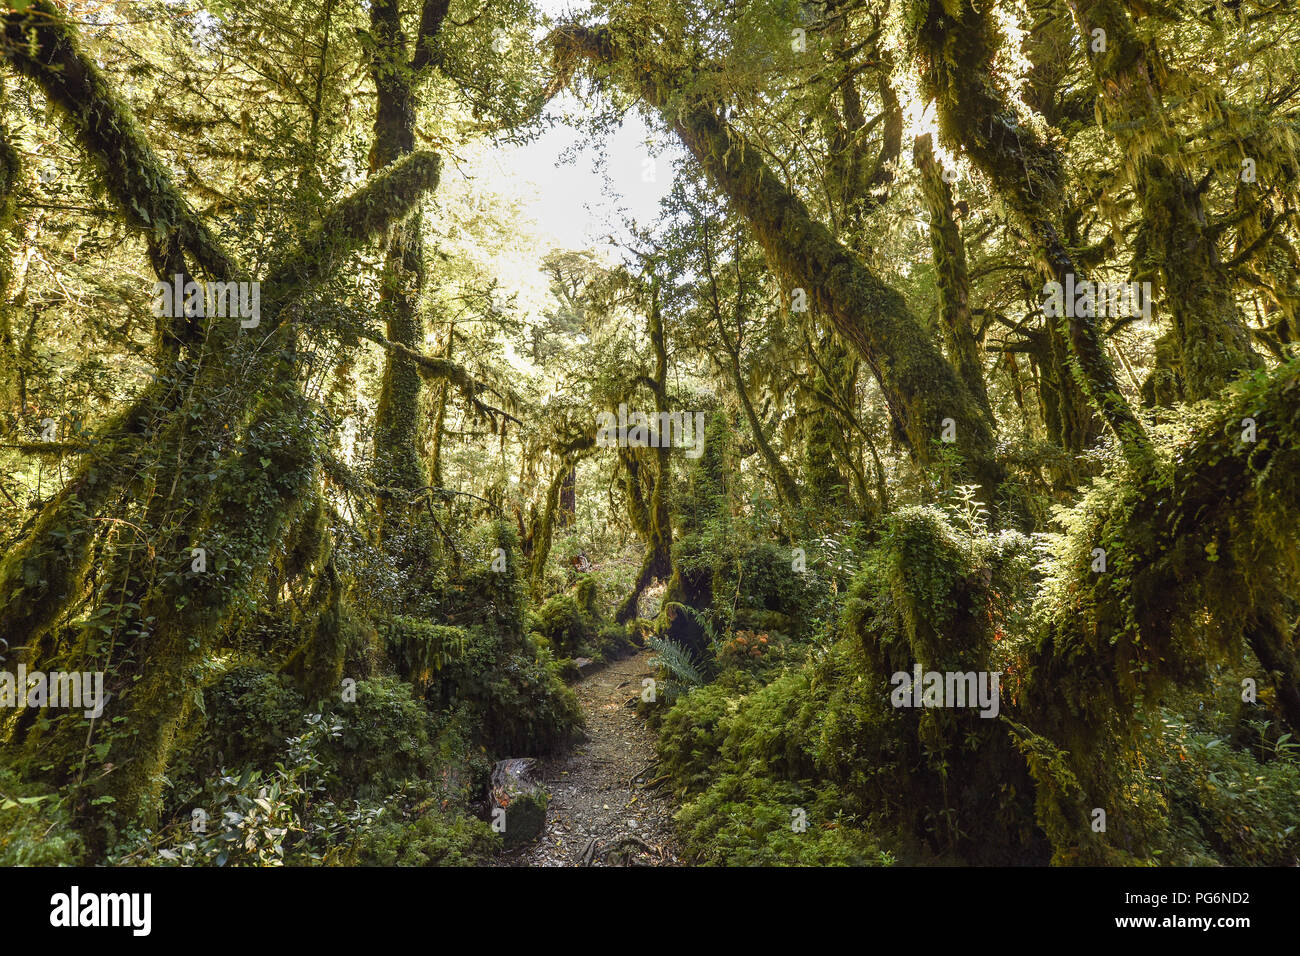 El Bosque Encantado, enchanted or bewitched forest, temperate rainforest with moss and lichen, Carratera Austral, Queulat Stock Photo